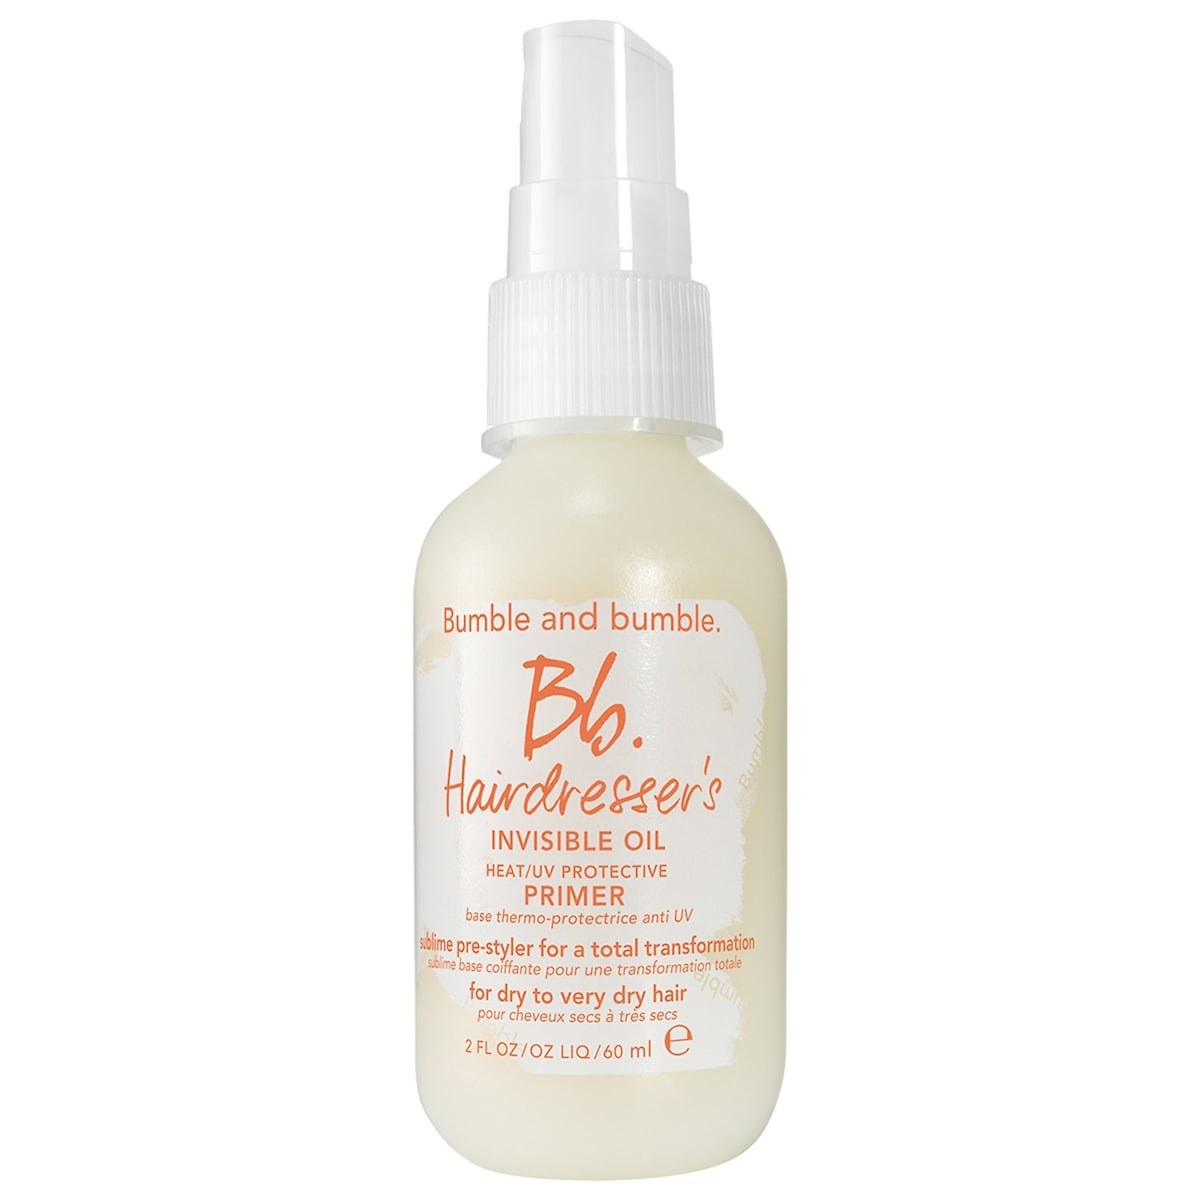 spray bottle of the invisible oil primer